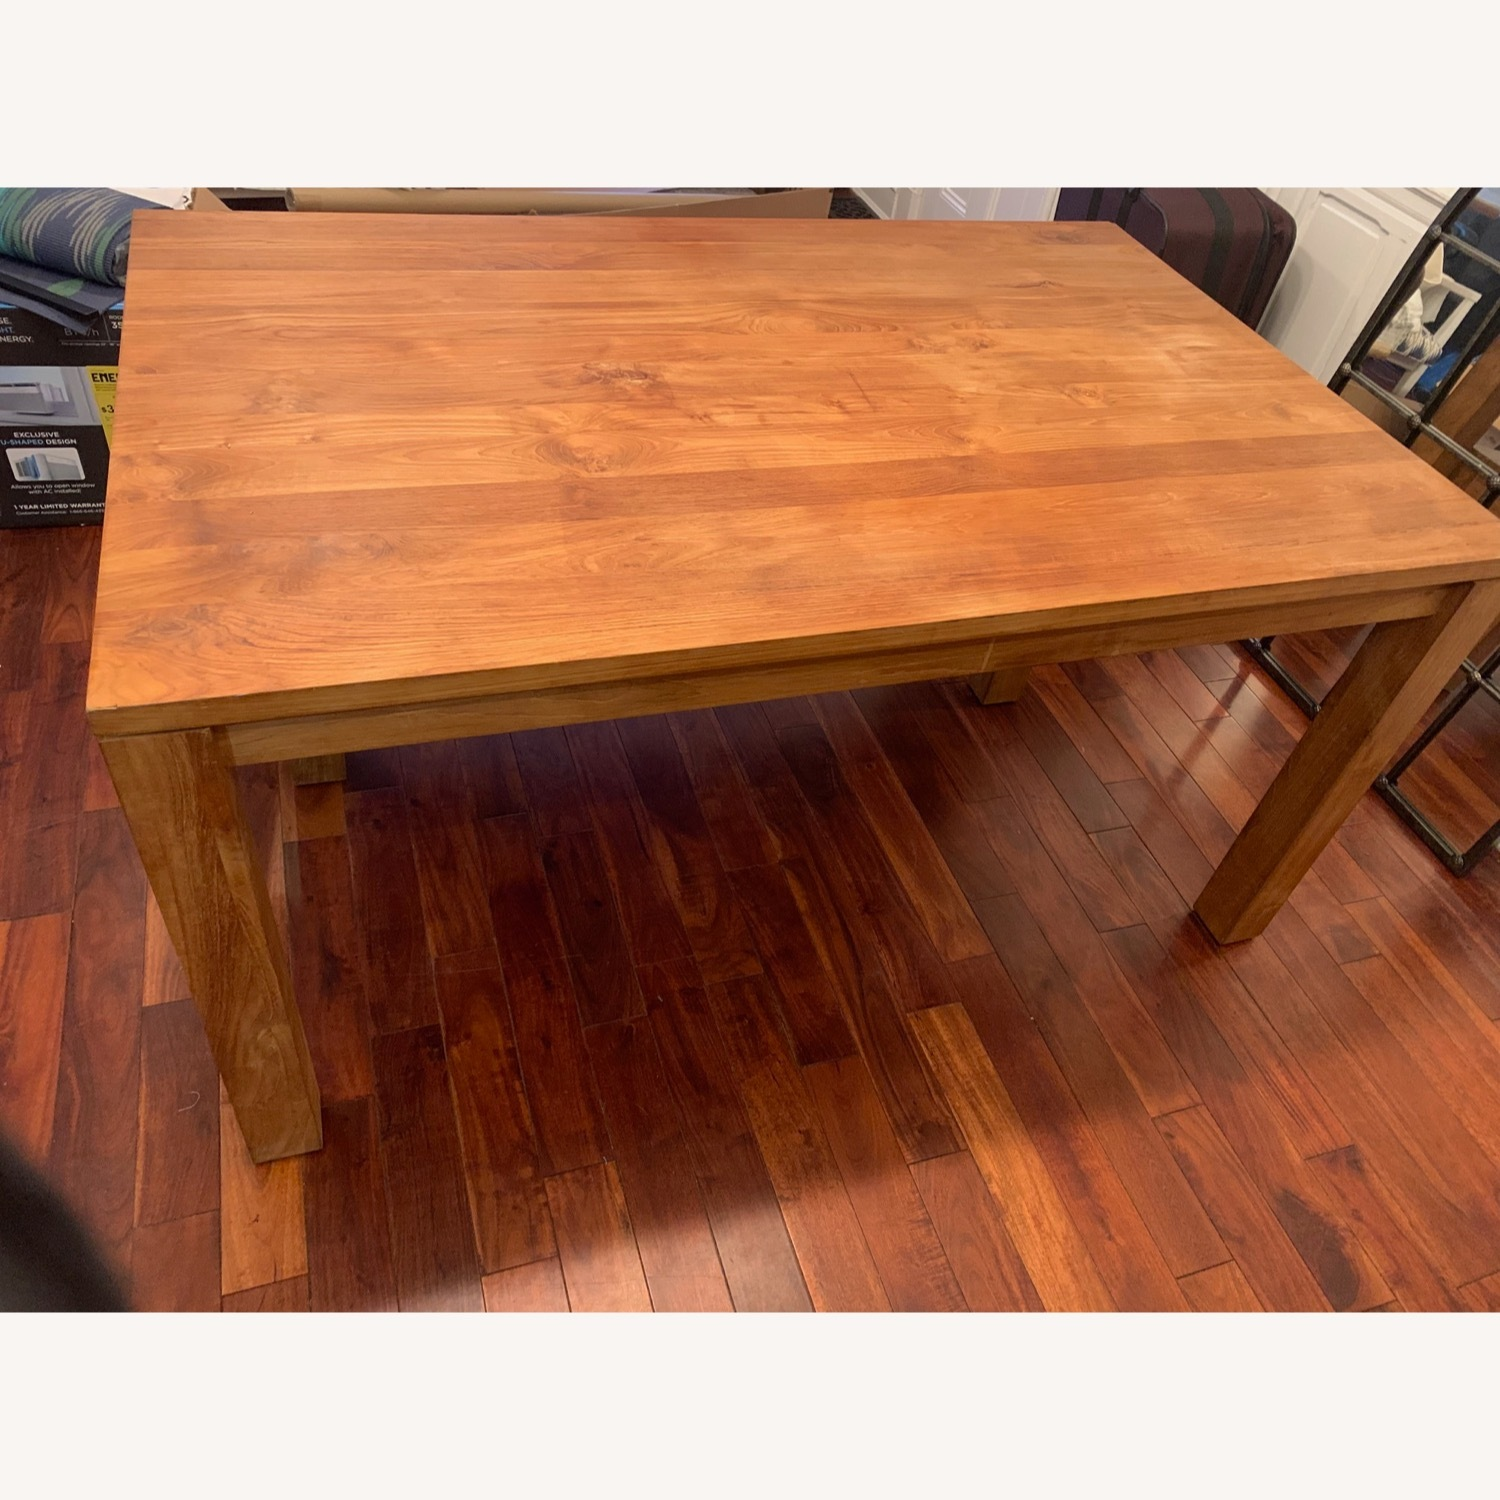 Crate & Barrel Pacifica Dining Table - image-12